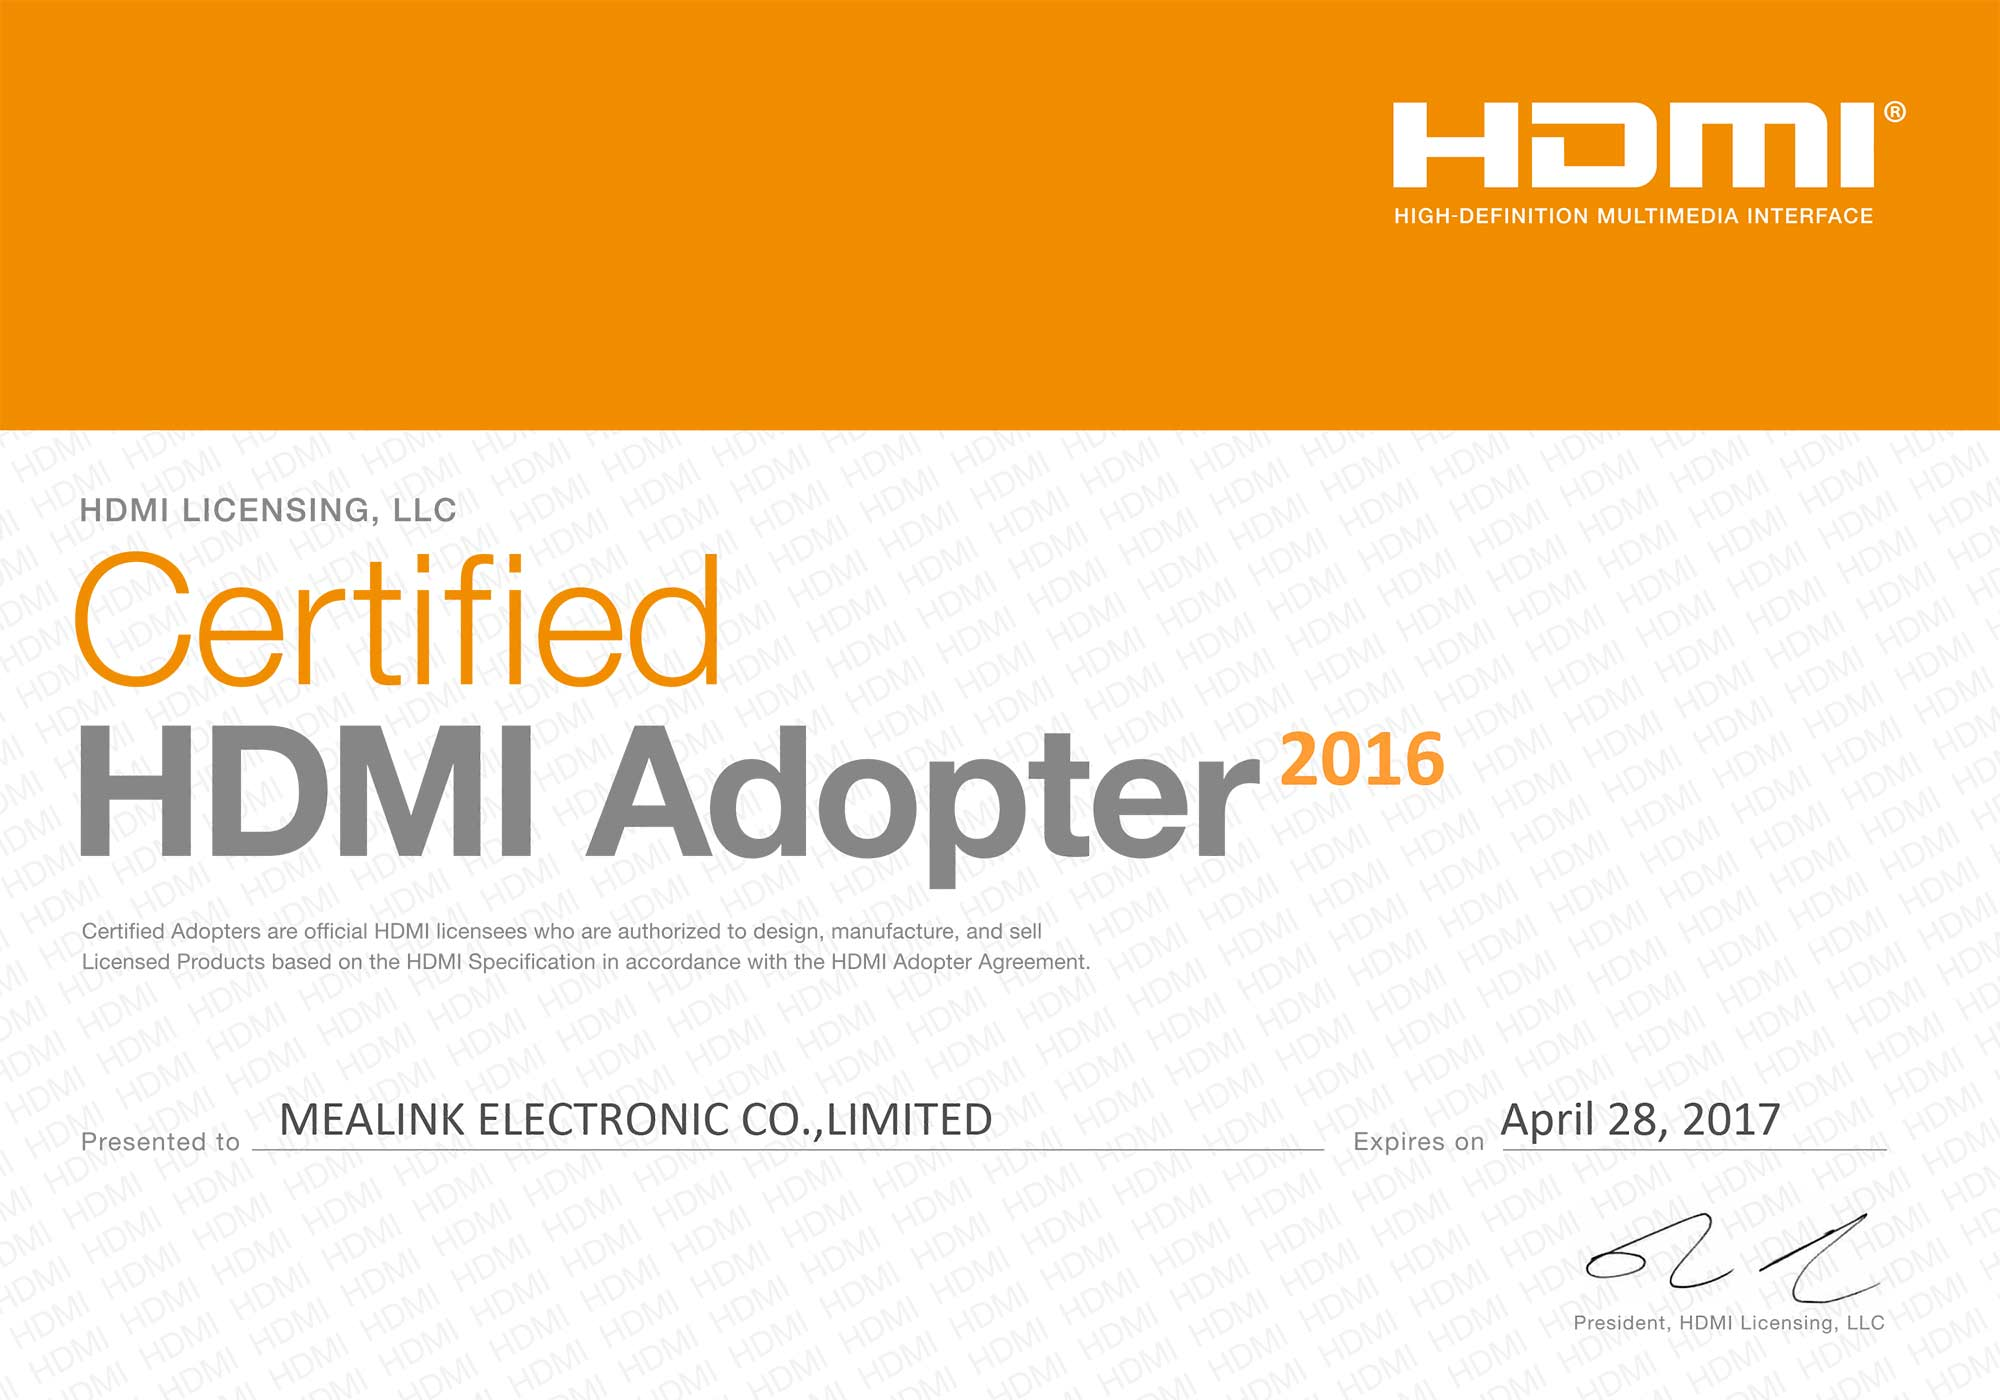 HDMI Adopter Certified